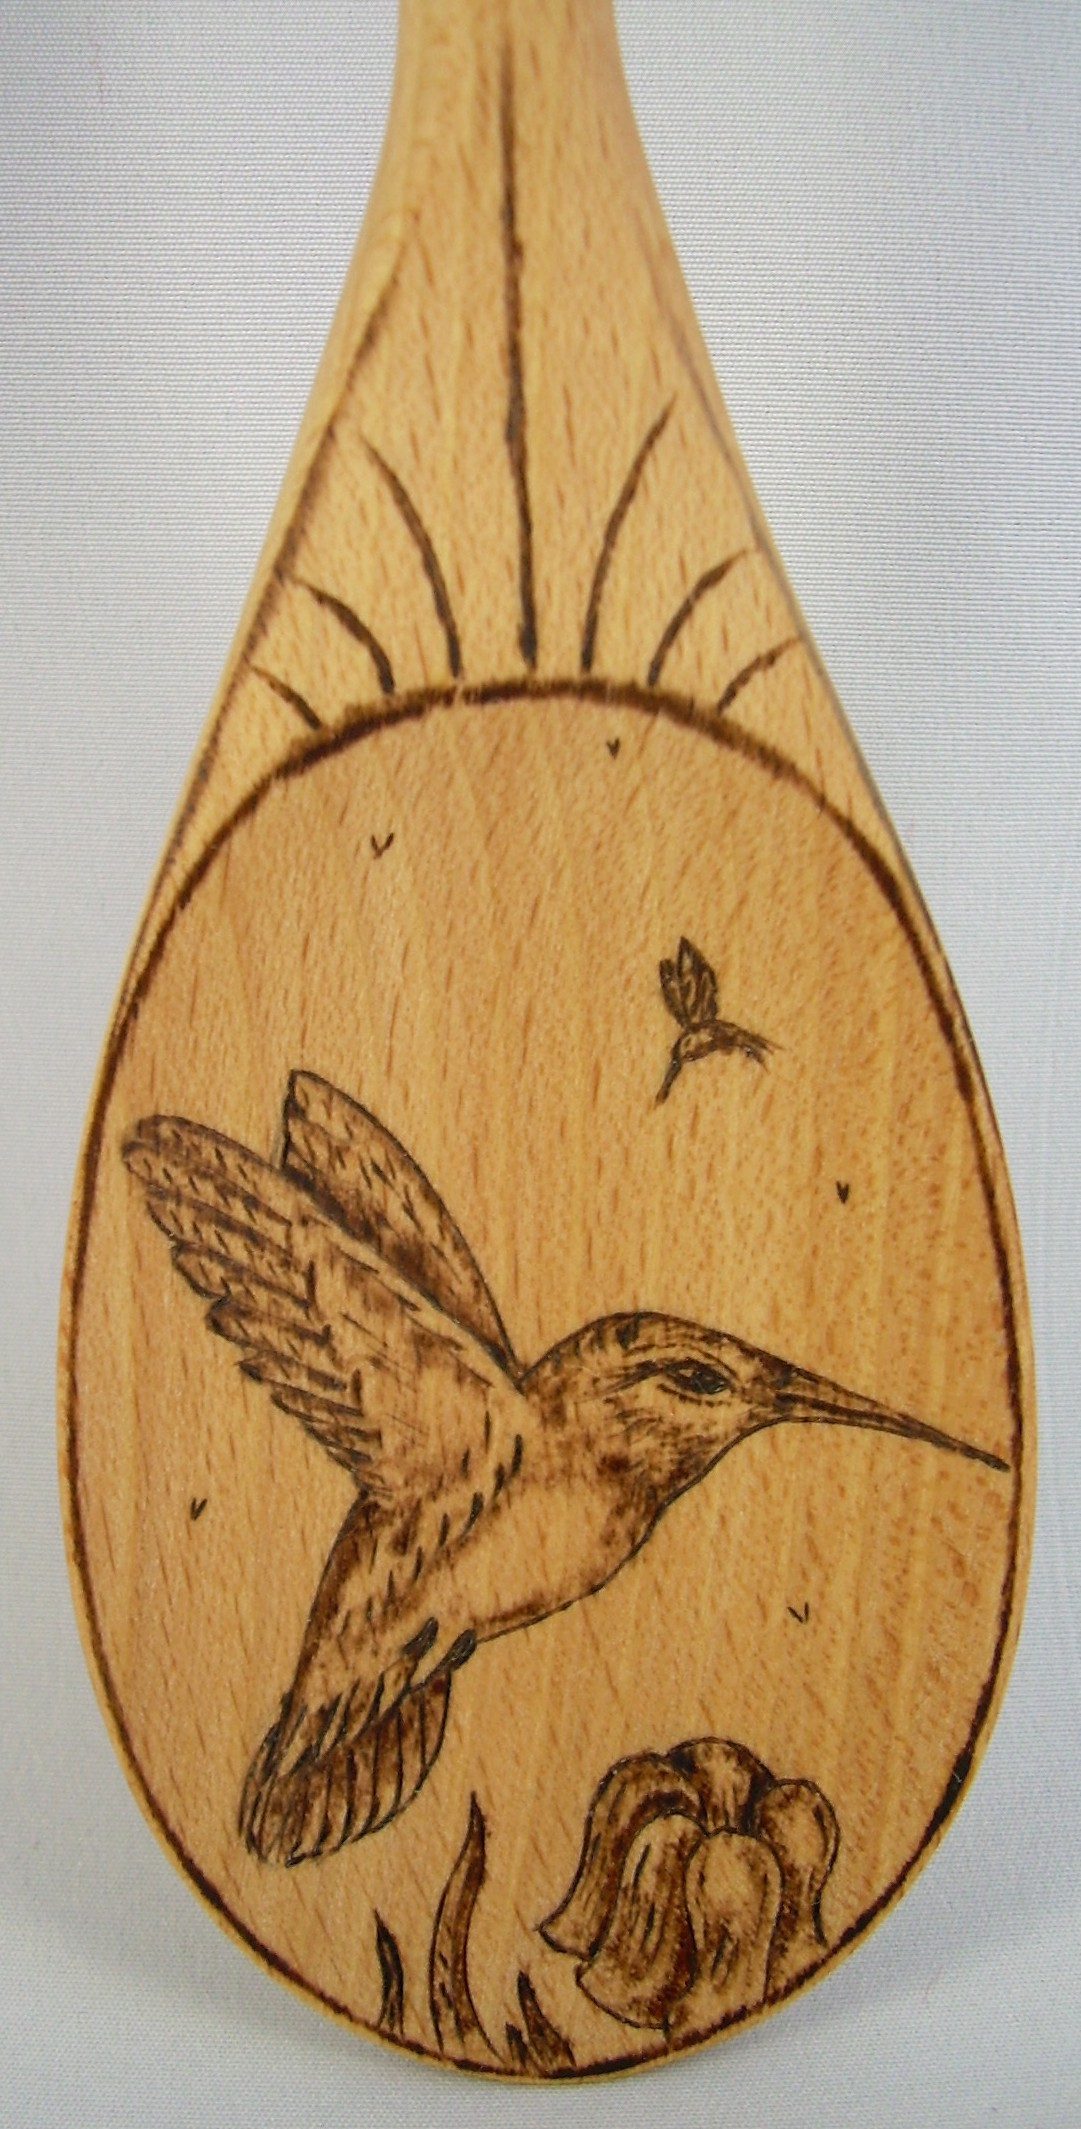 Cousins Originals Offers Pyrography I E Pyro Engraved